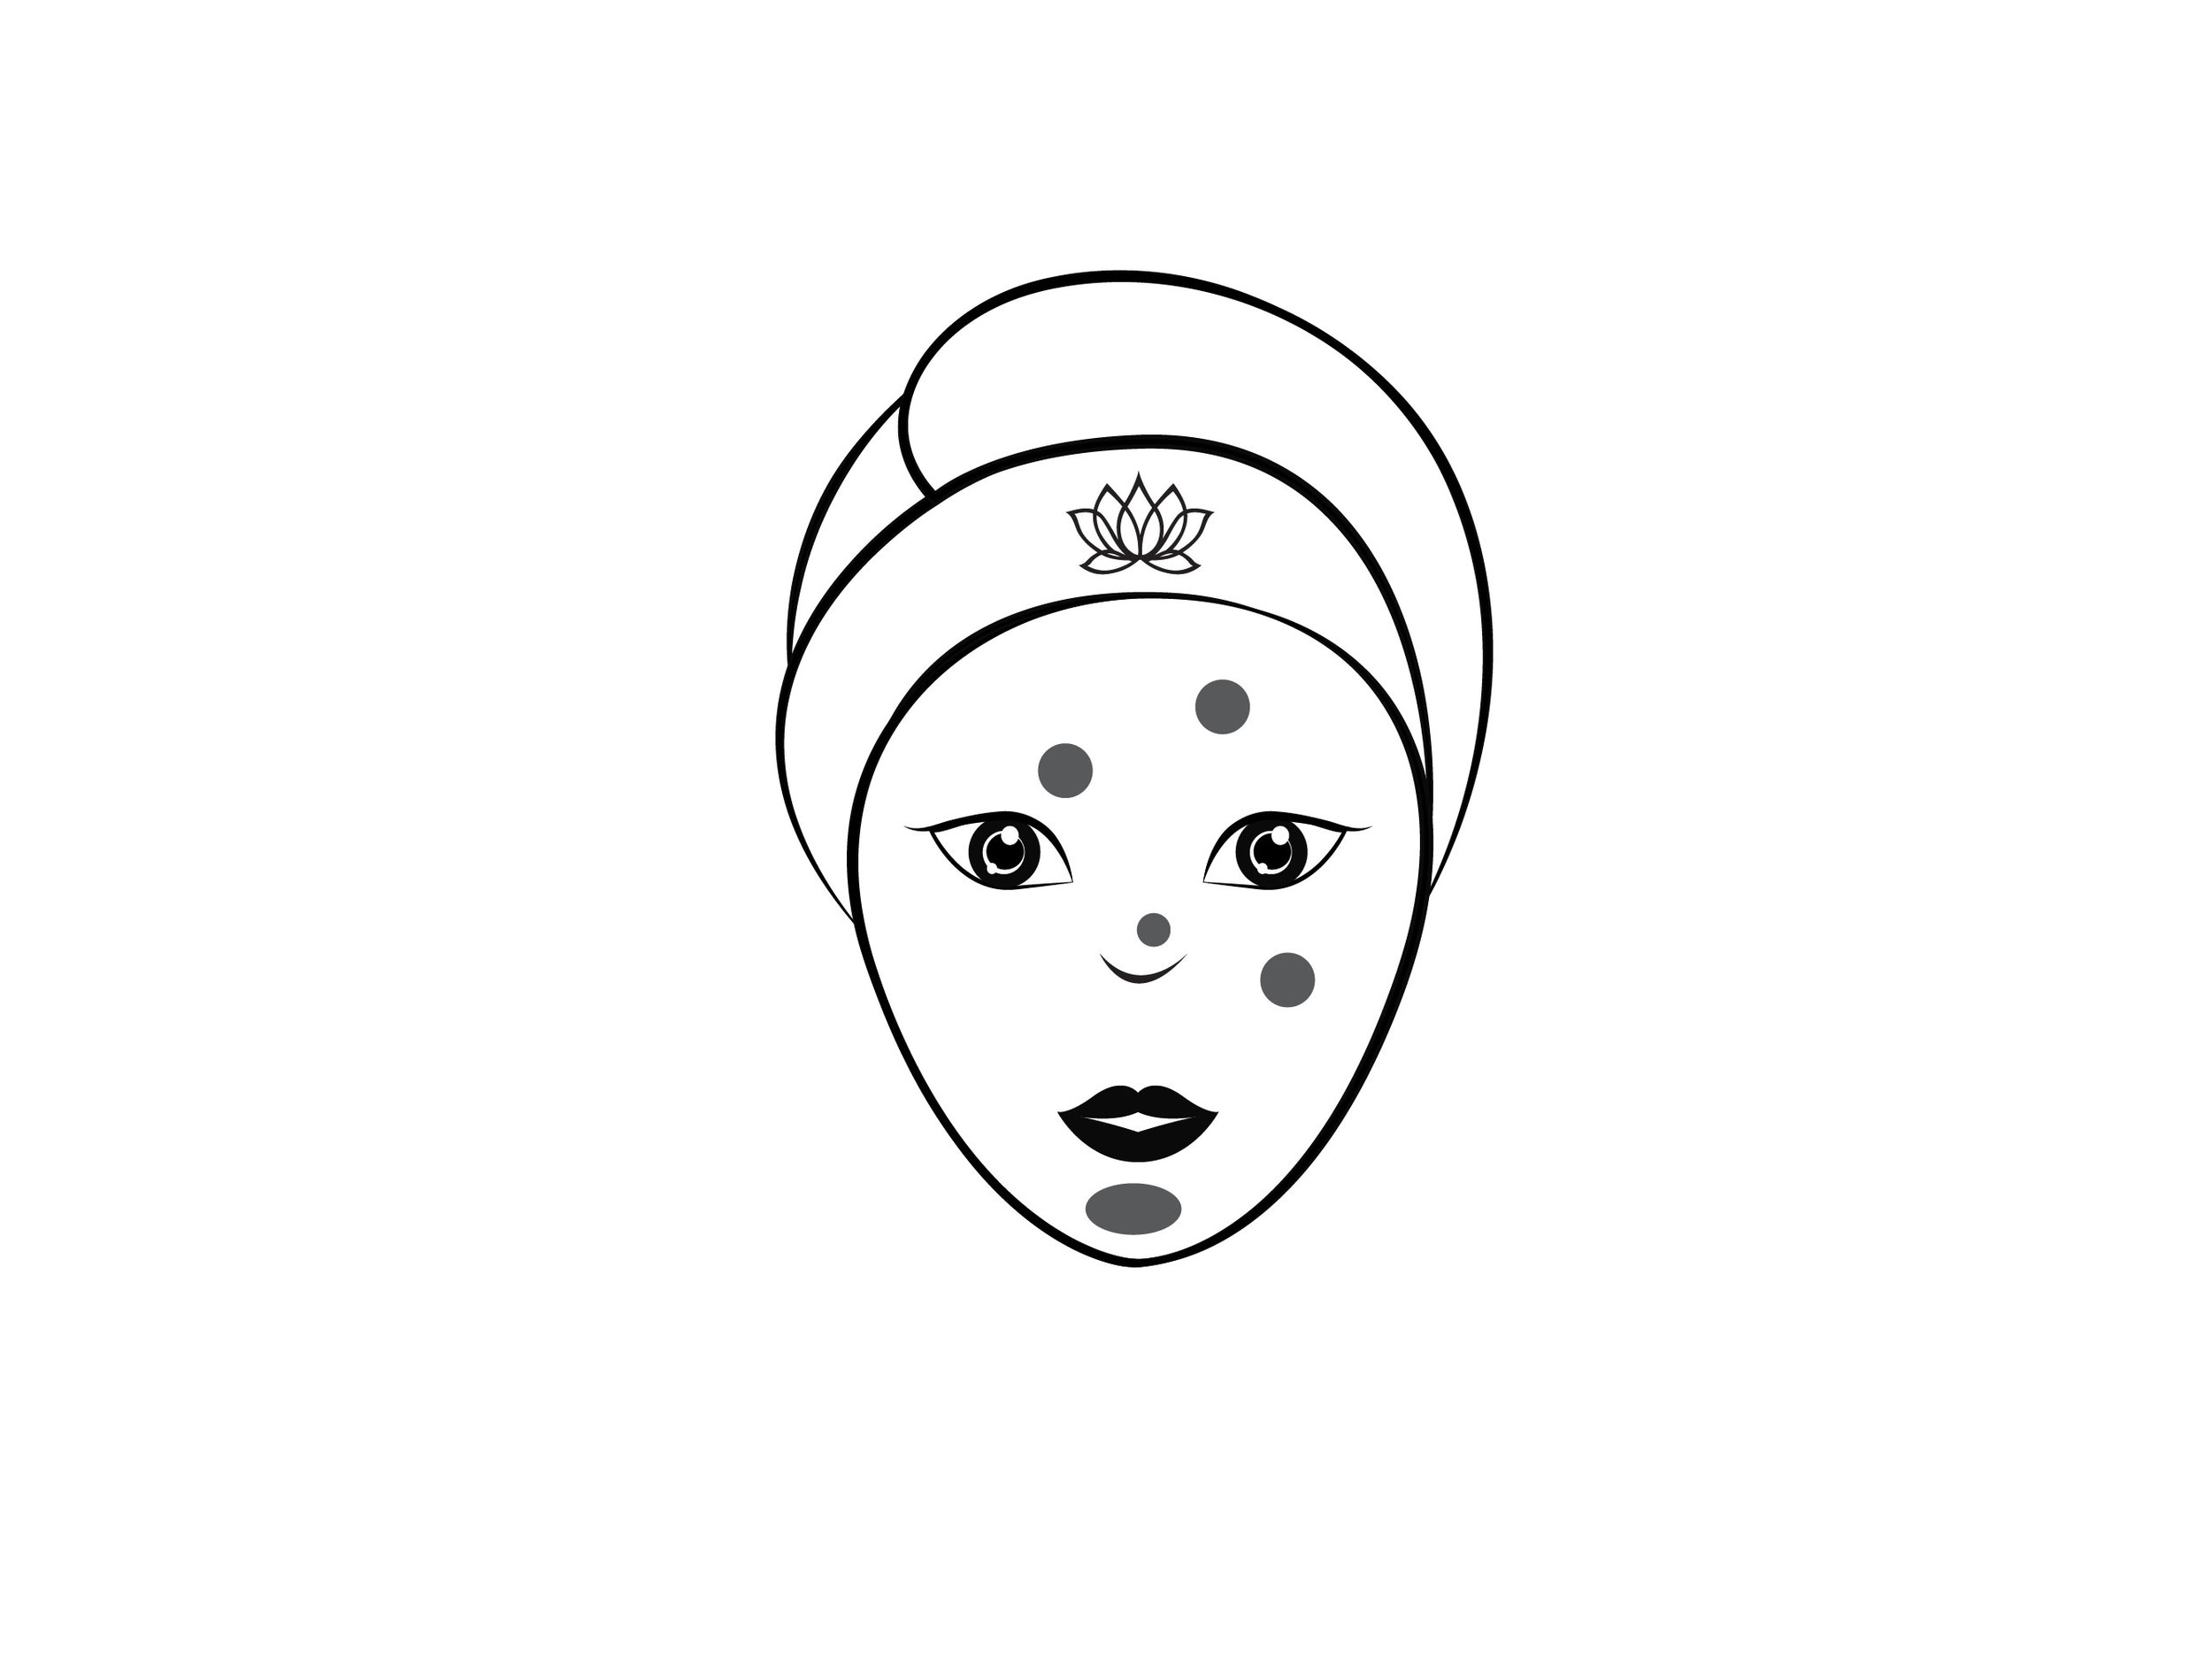 dprskn-claymask-spottreatment-icon-01.jpg